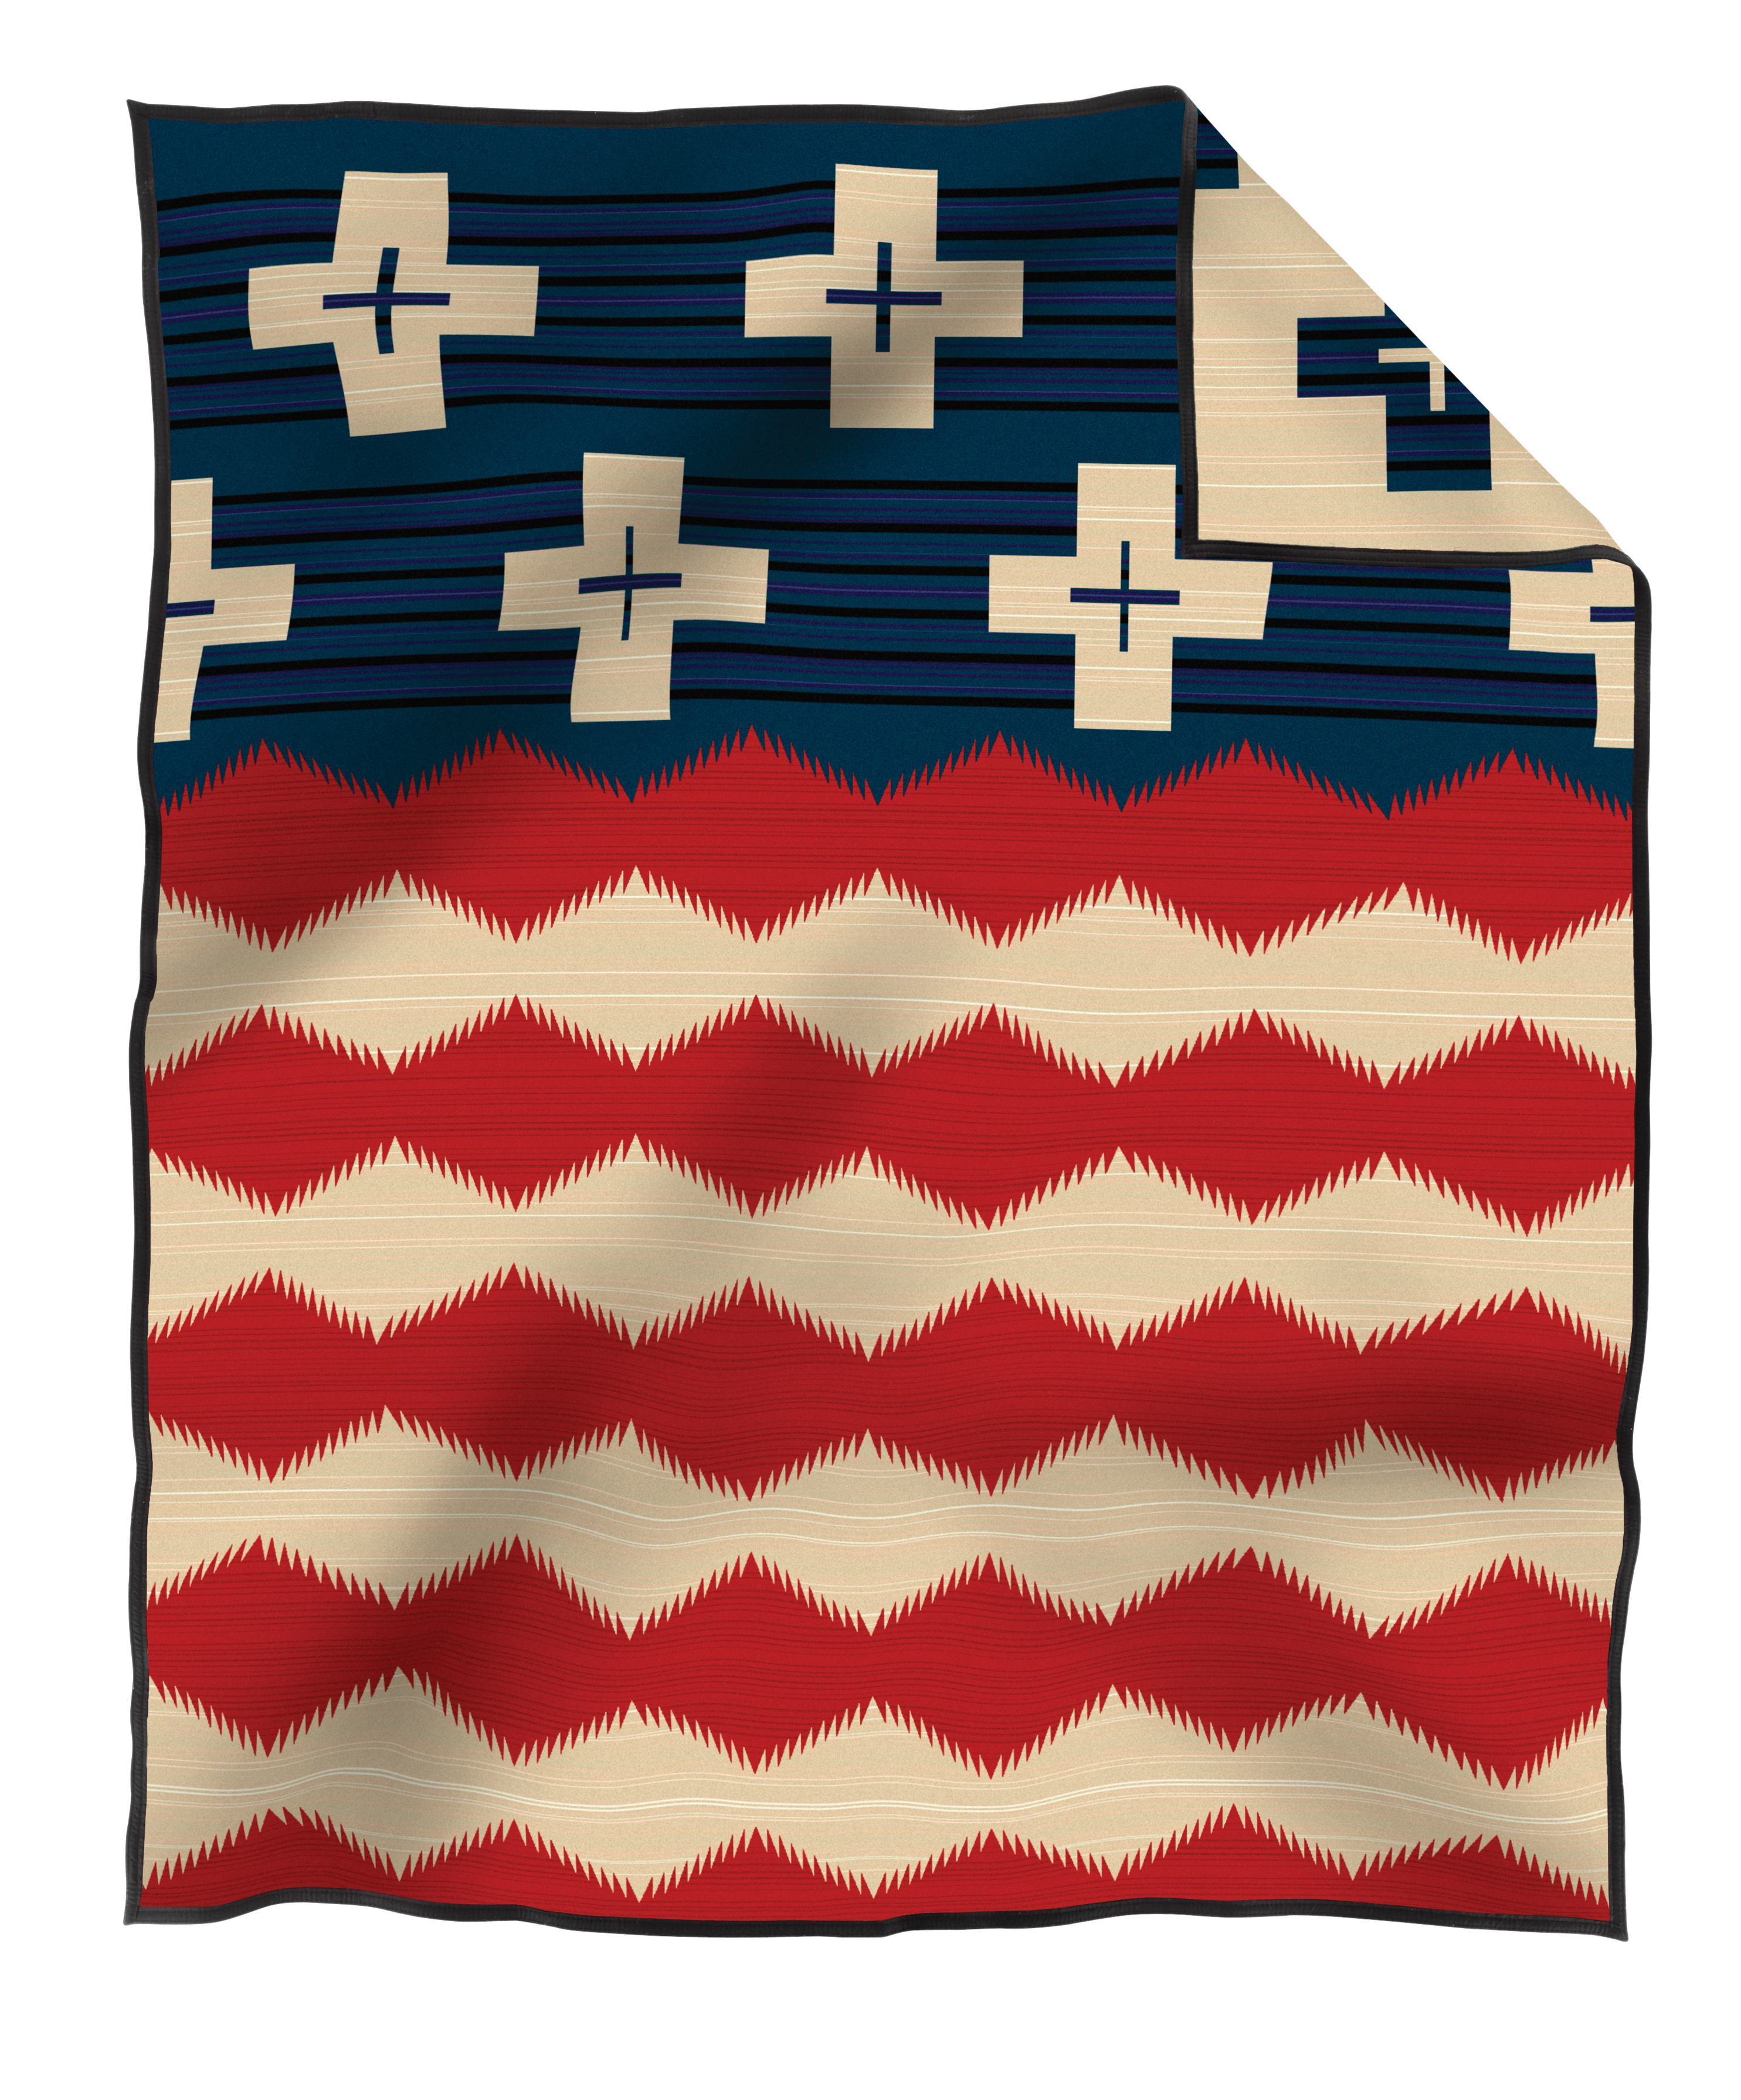 patriotic pendletons  blankets with a message